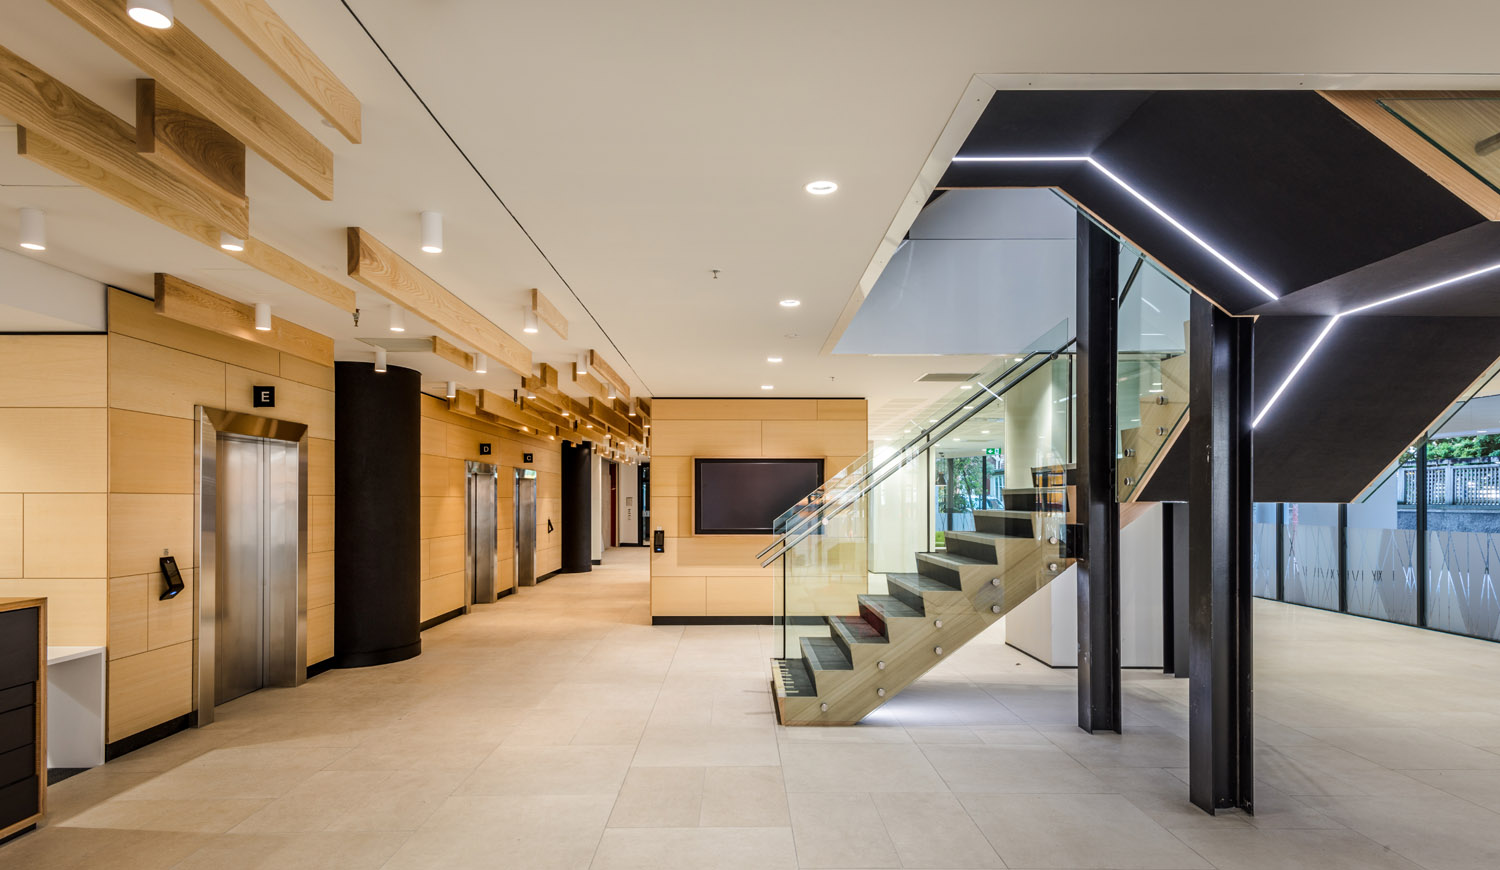 0101-Reception-Ground-Floor-DIA-SNAP-Photography.jpg